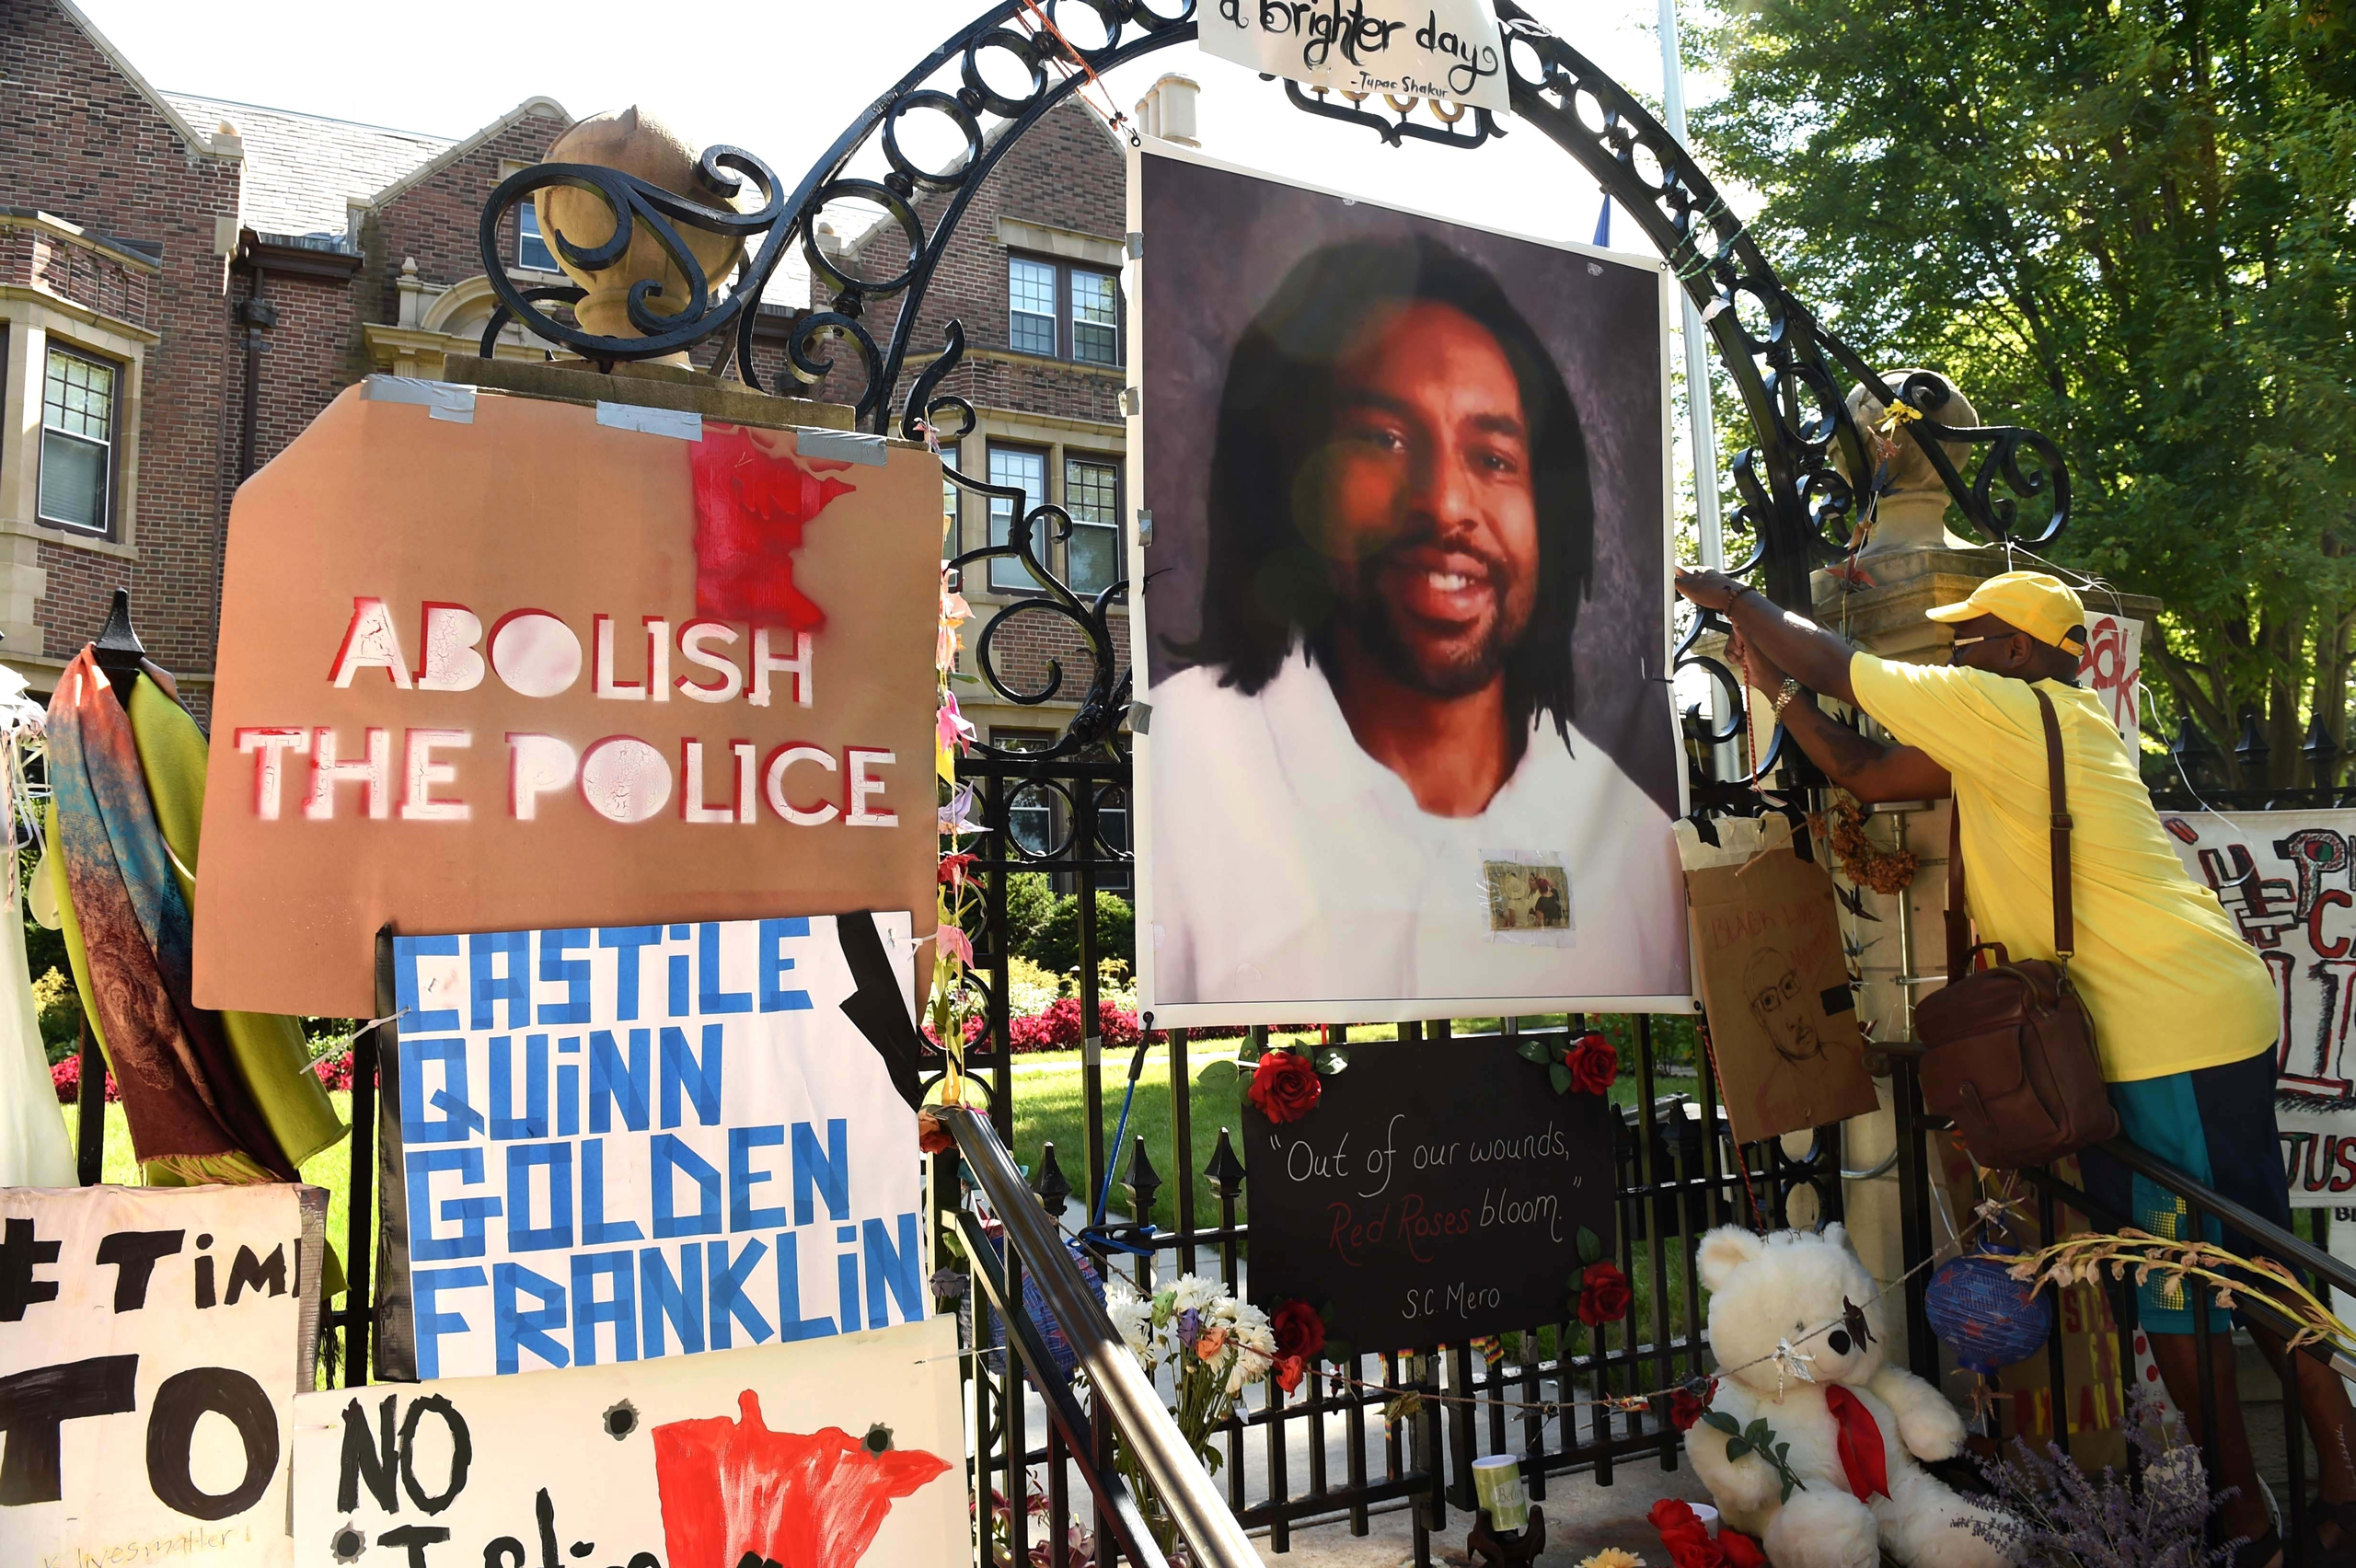 King Demetrius Pendleton hangs a sign on the gate of the Governor's Residence as protesters demonstrate against the shooting death of Philando Castile by a St. Anthony police officer, in St. Paul, Minn., on July 24, 2016.